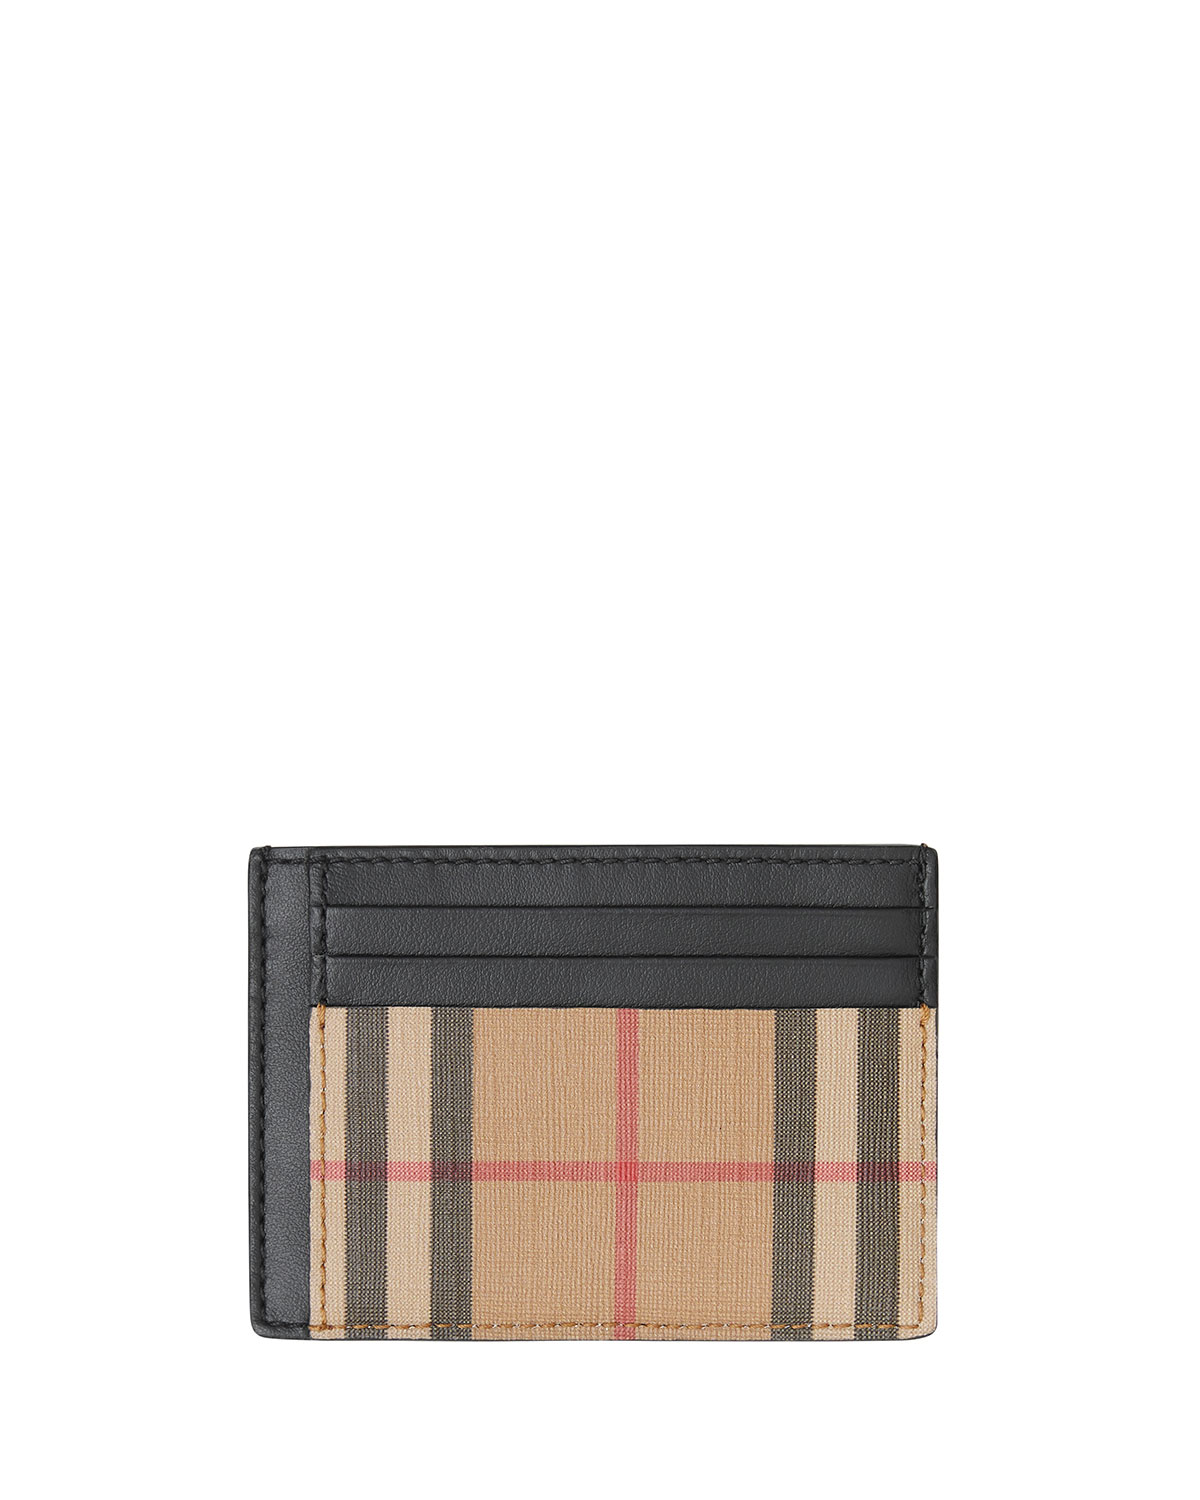 Burberry Cases Men's Chase Vintage Check Card Case with Money Clip